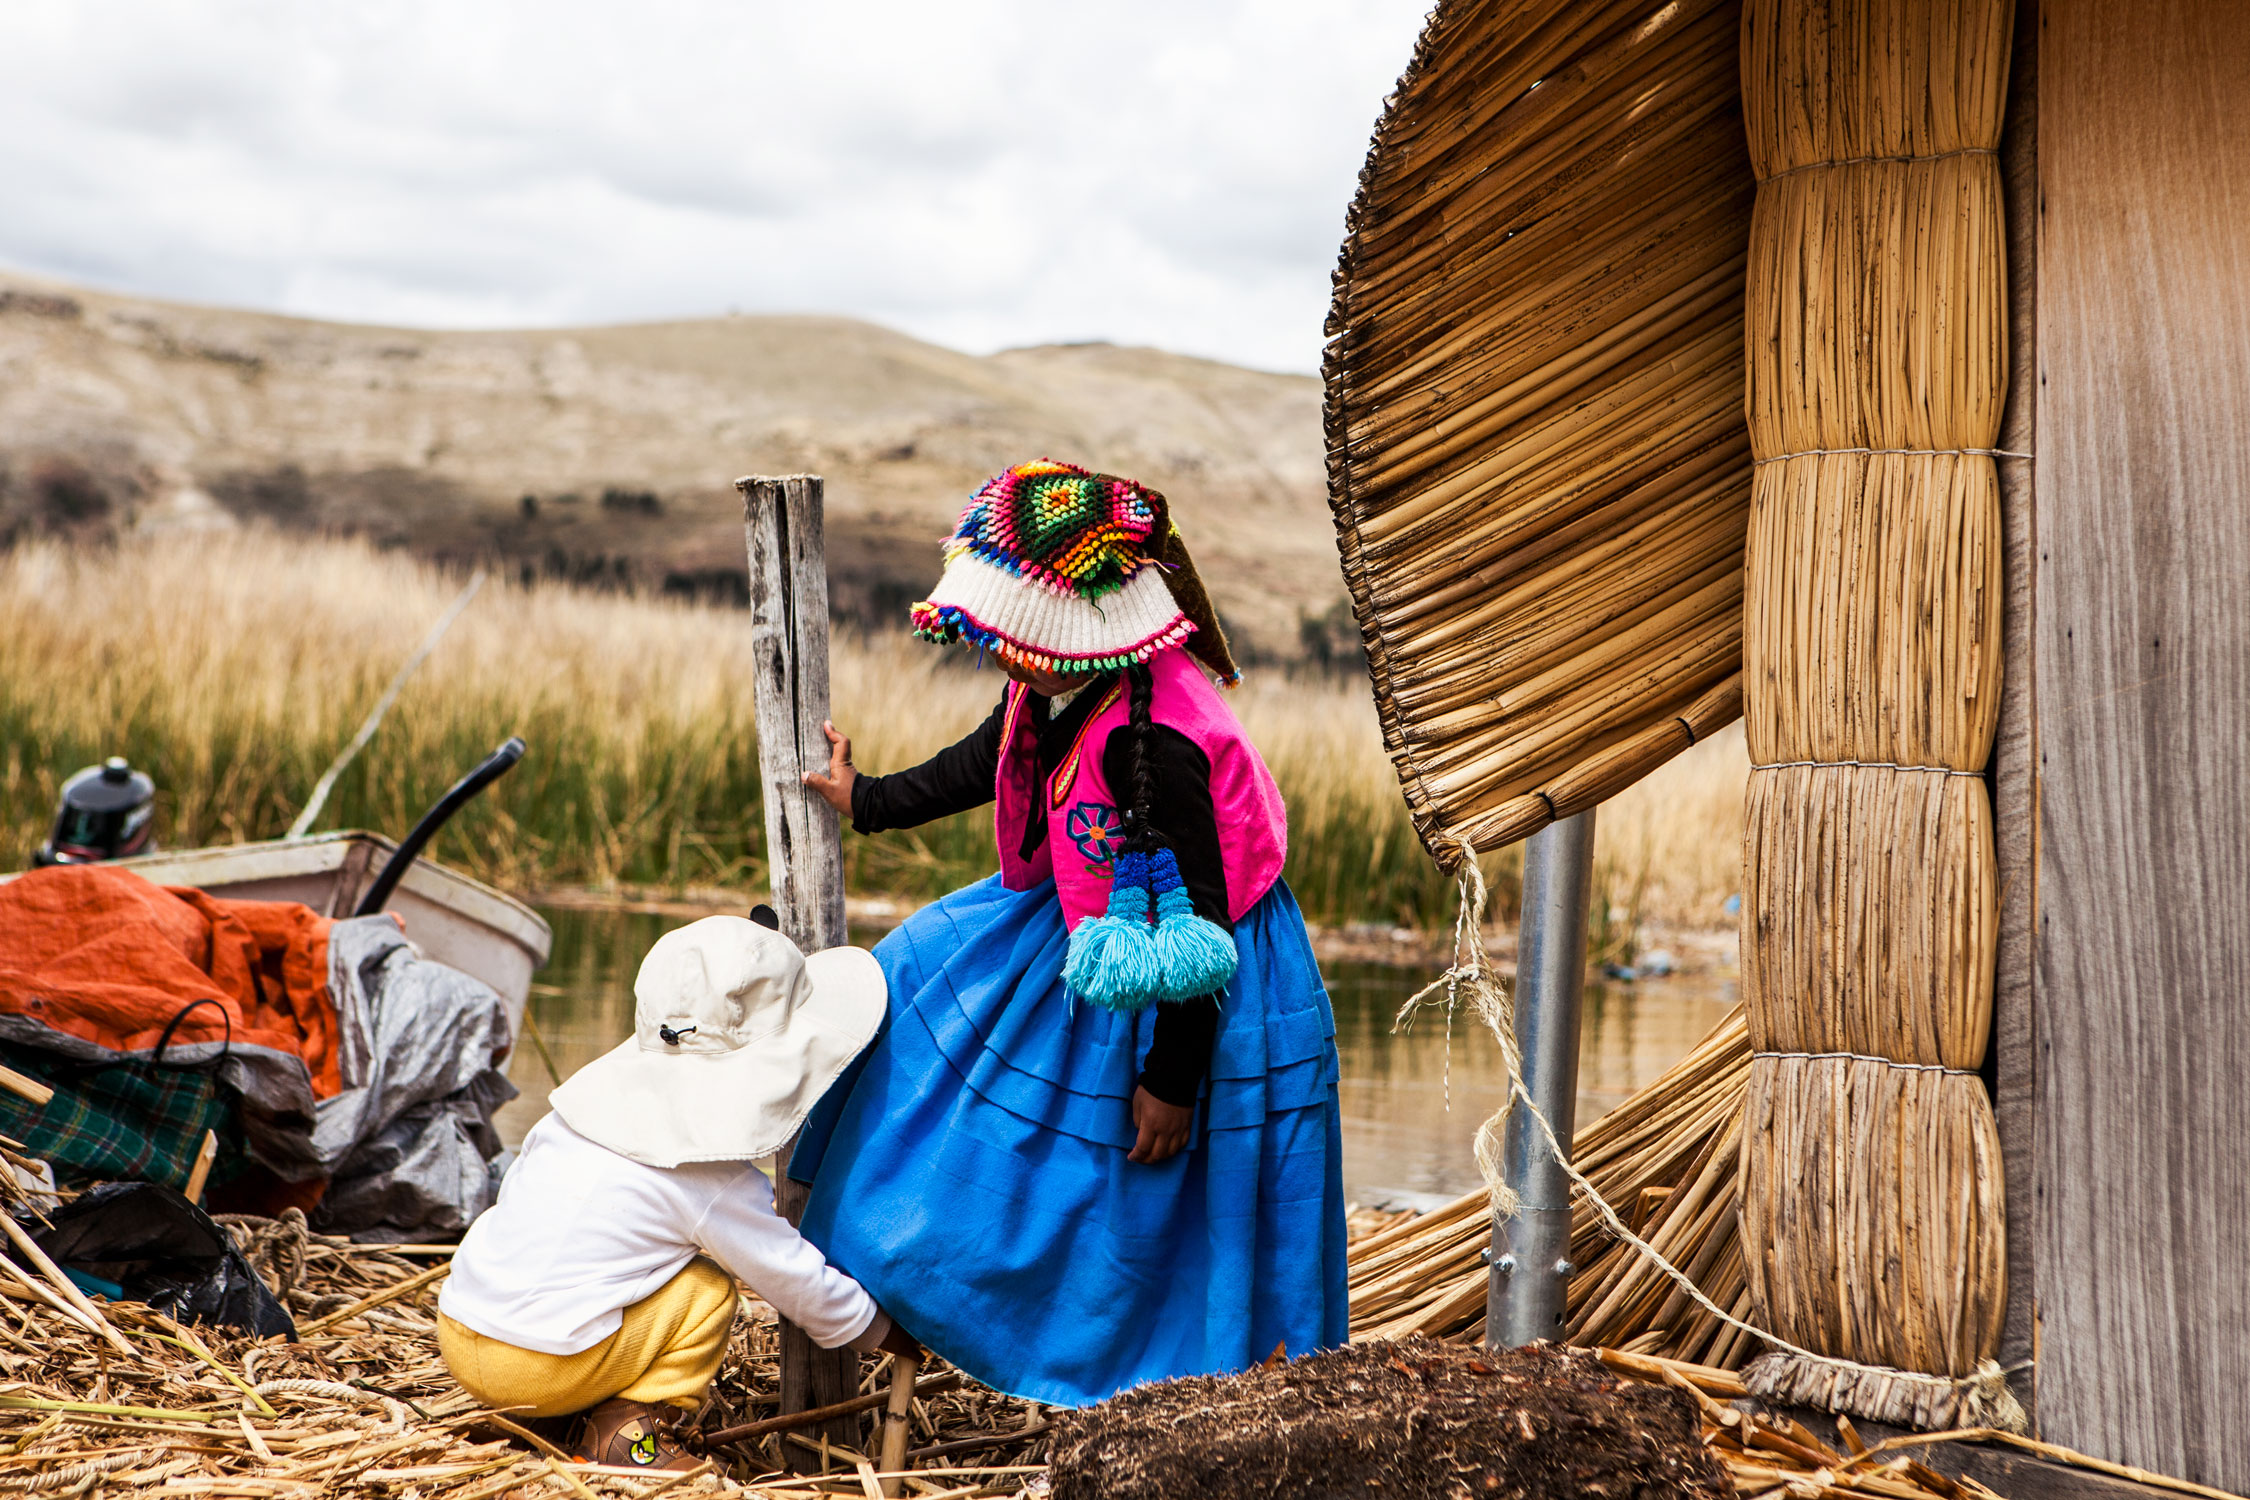 lake-titicaca-puno-peru-wander-south-reed-islands-children-playing.jpg